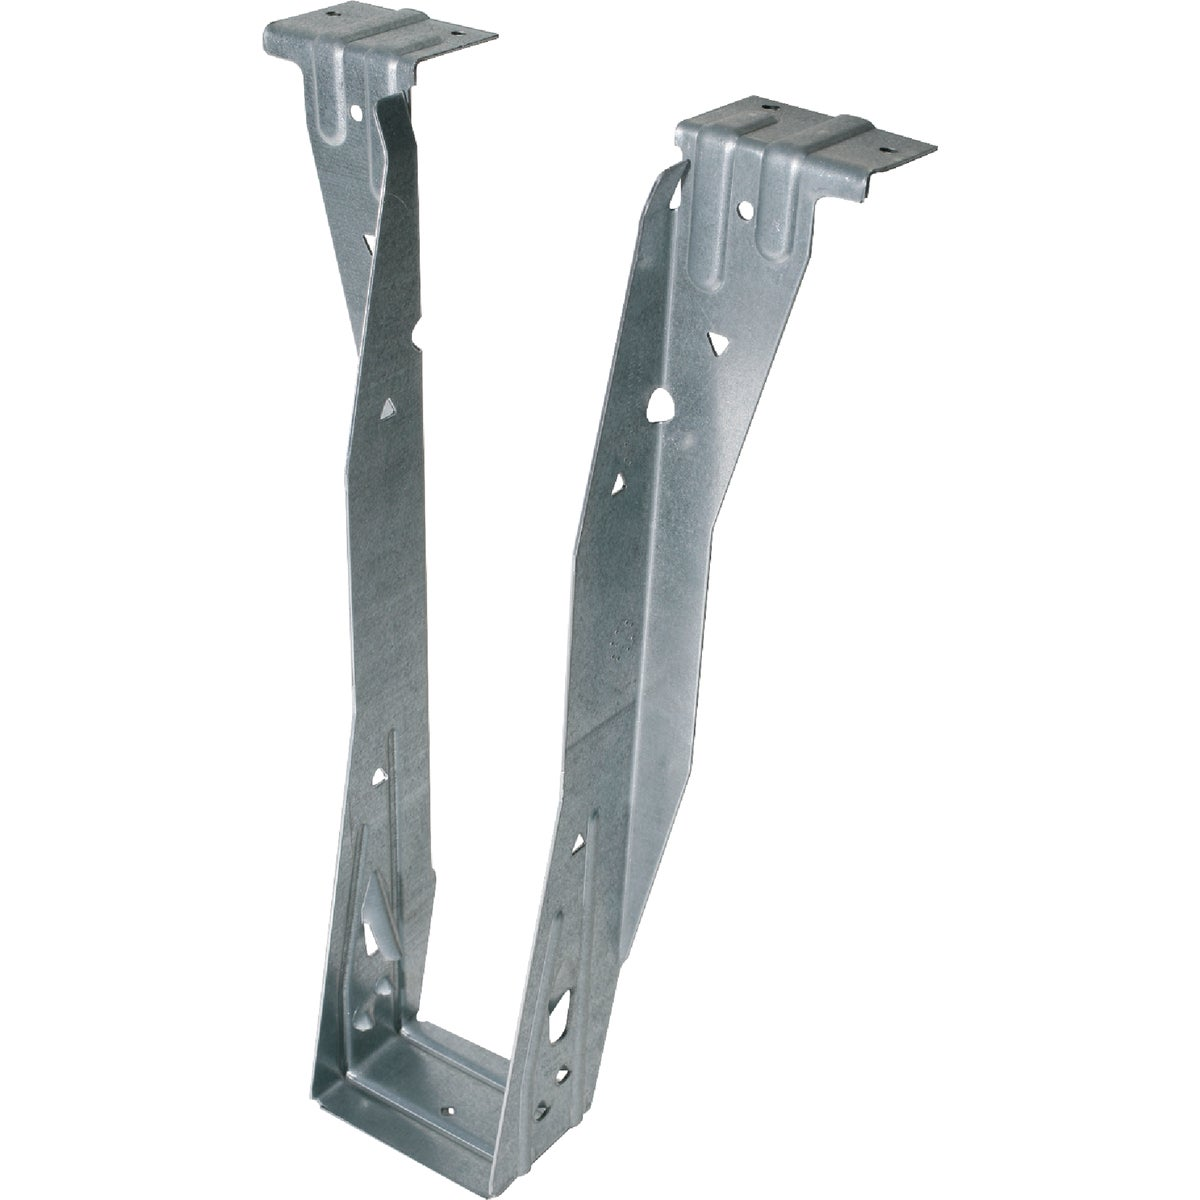 TOP FLANGE HANGER - ITS2.56/9.5 by Simpson Strong Tie